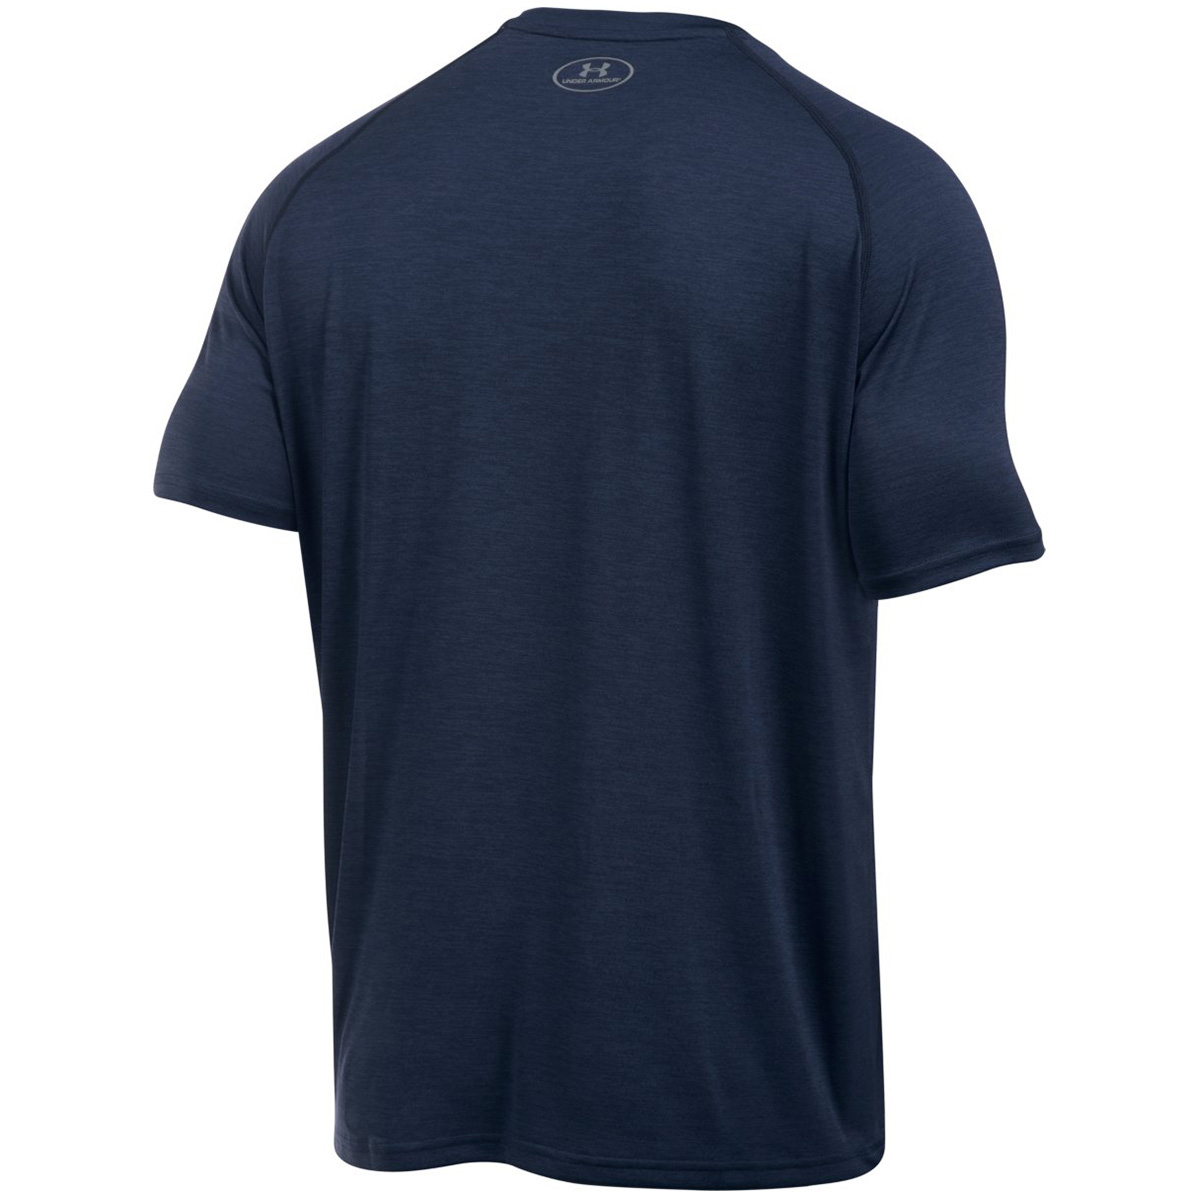 Under-Armour-Mens-UA-Tech-SS-T-Shirt-HeatGear-Training-31-OFF-RRP thumbnail 64